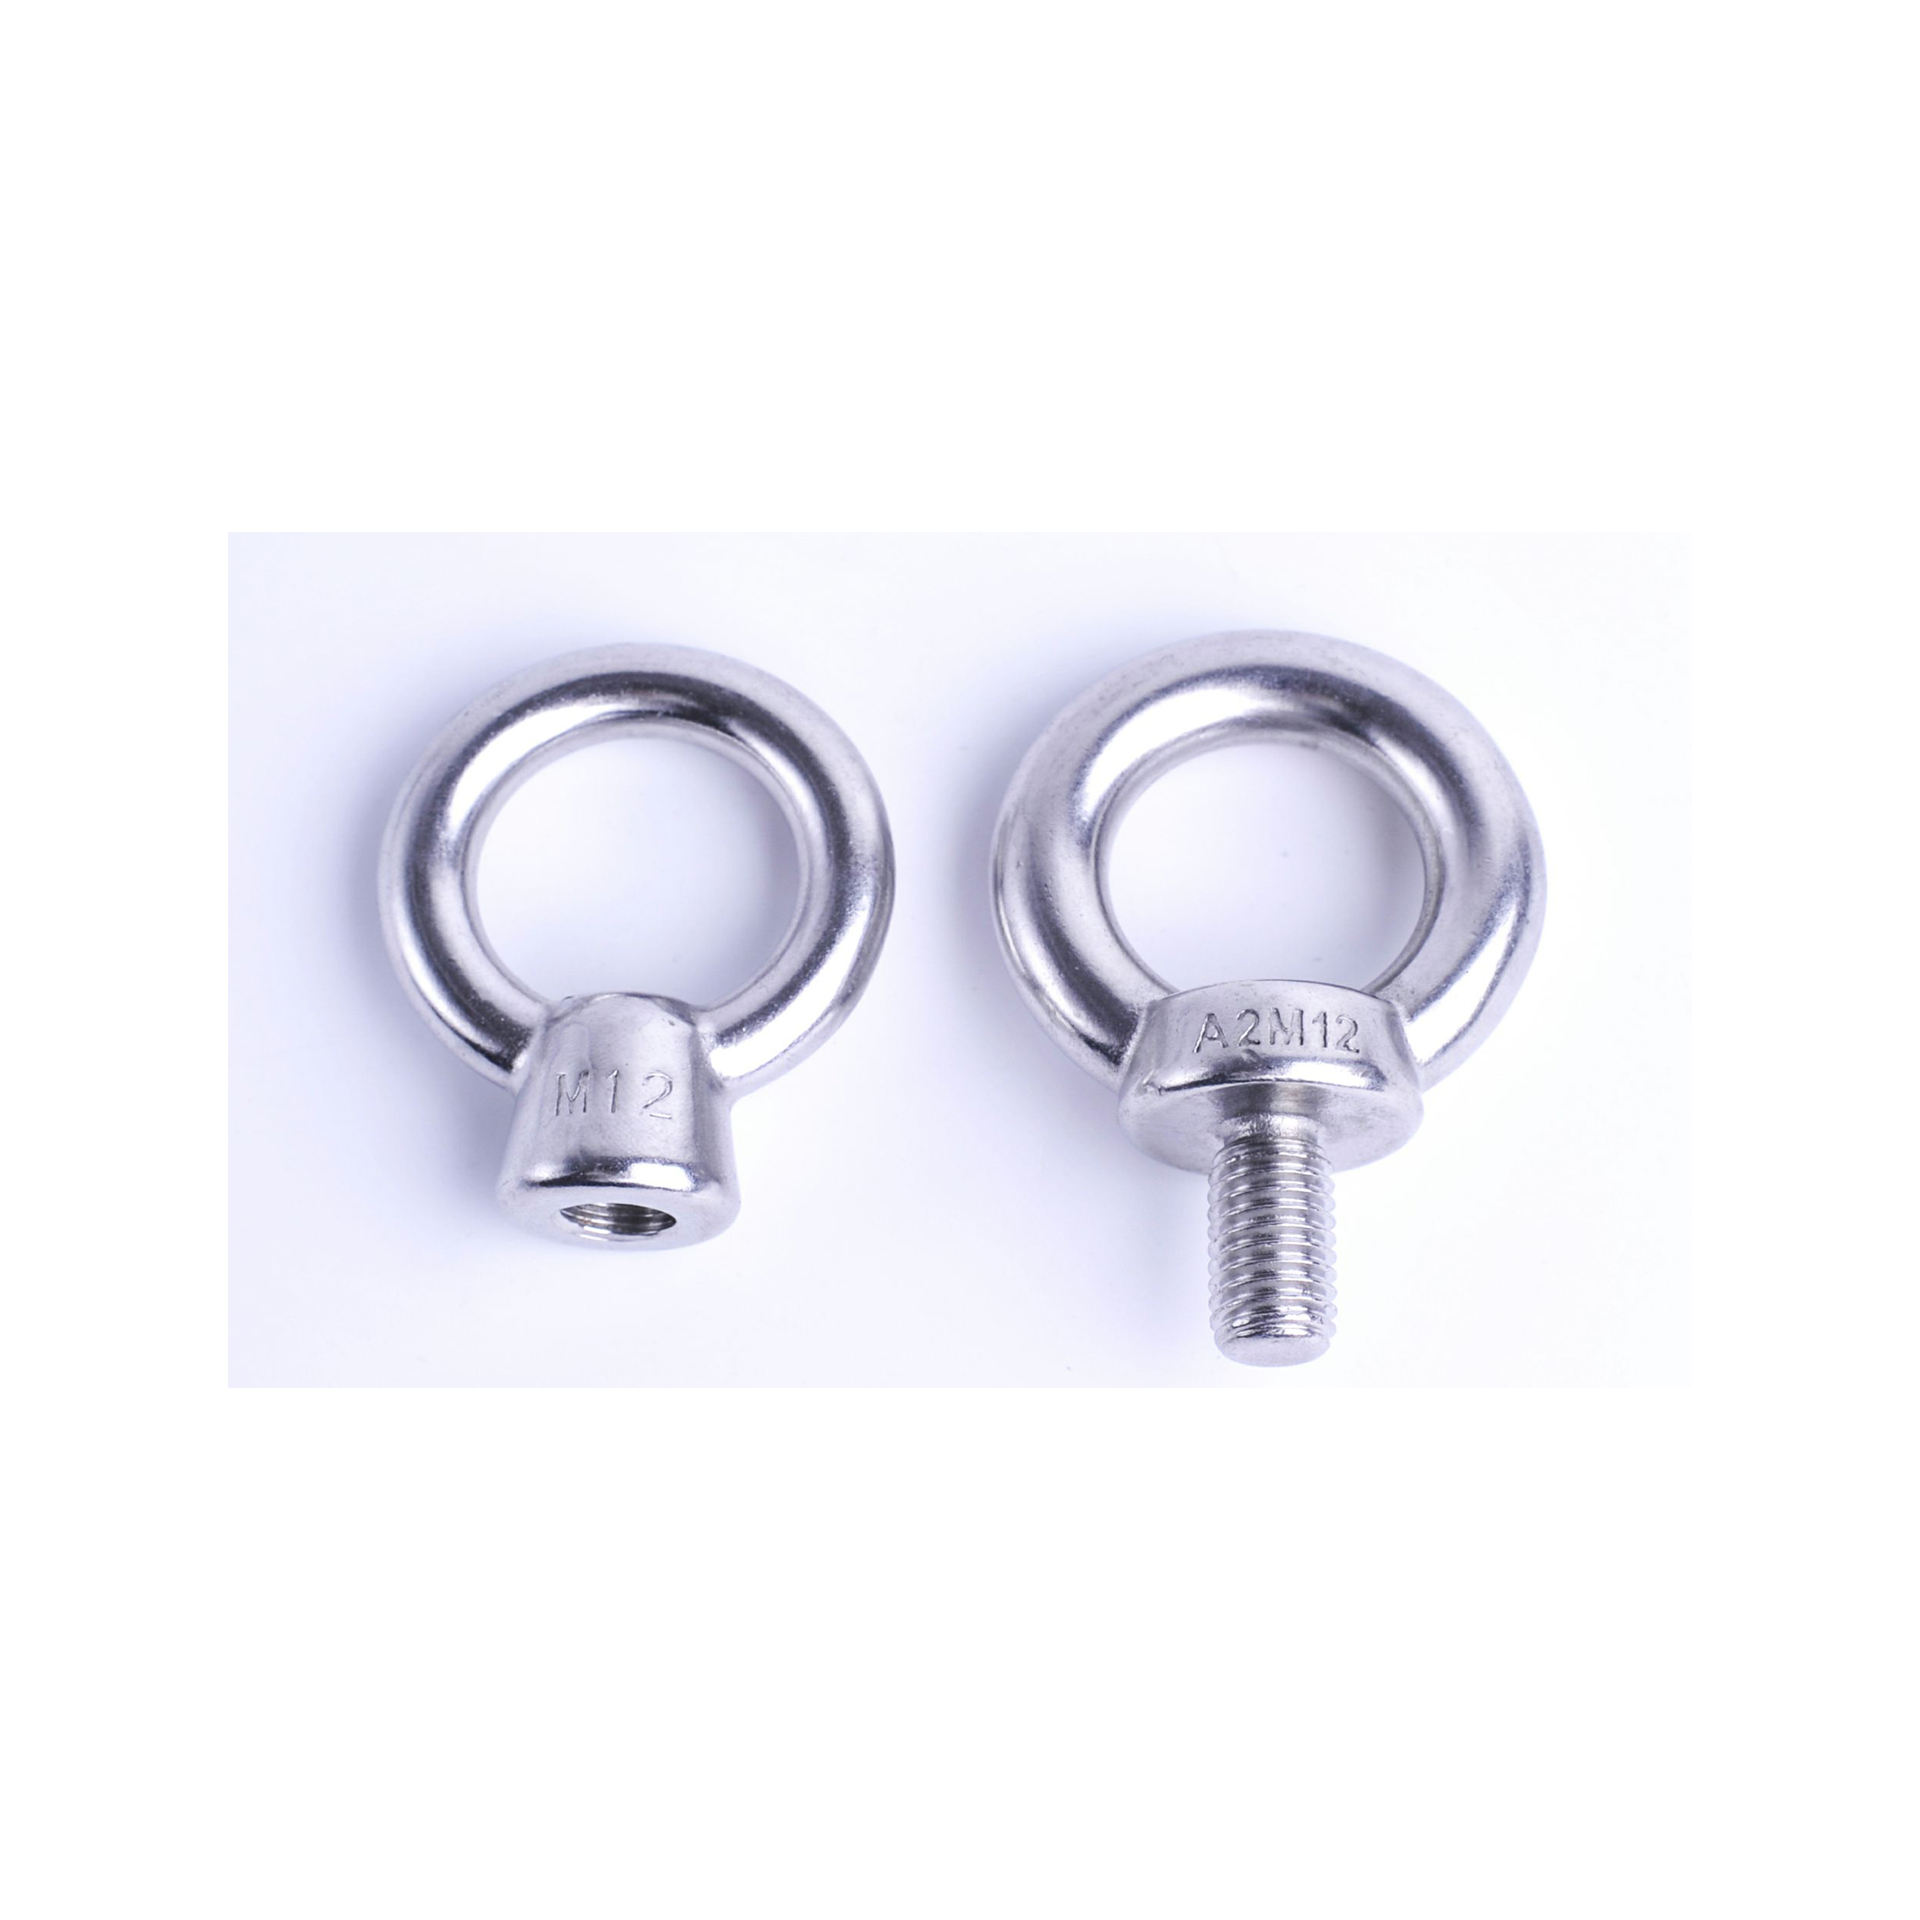 Stainless Steel /Carbon Steel Eye Bolt, Eyebolts, types of eye bolt